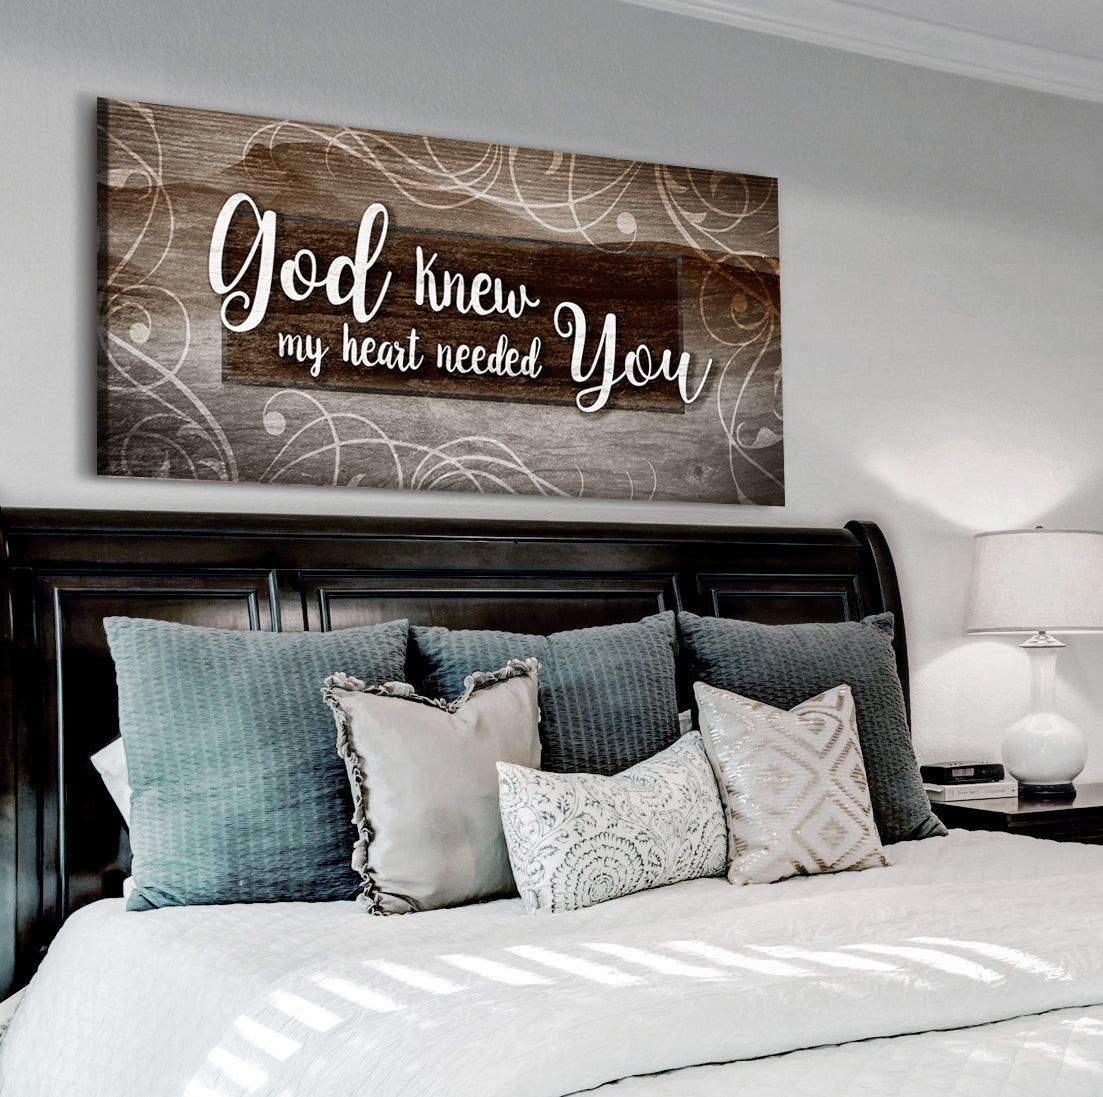 Christian Wall Art: God Knew My Heart Needed You V12 (Wood Frame Ready To Hang)